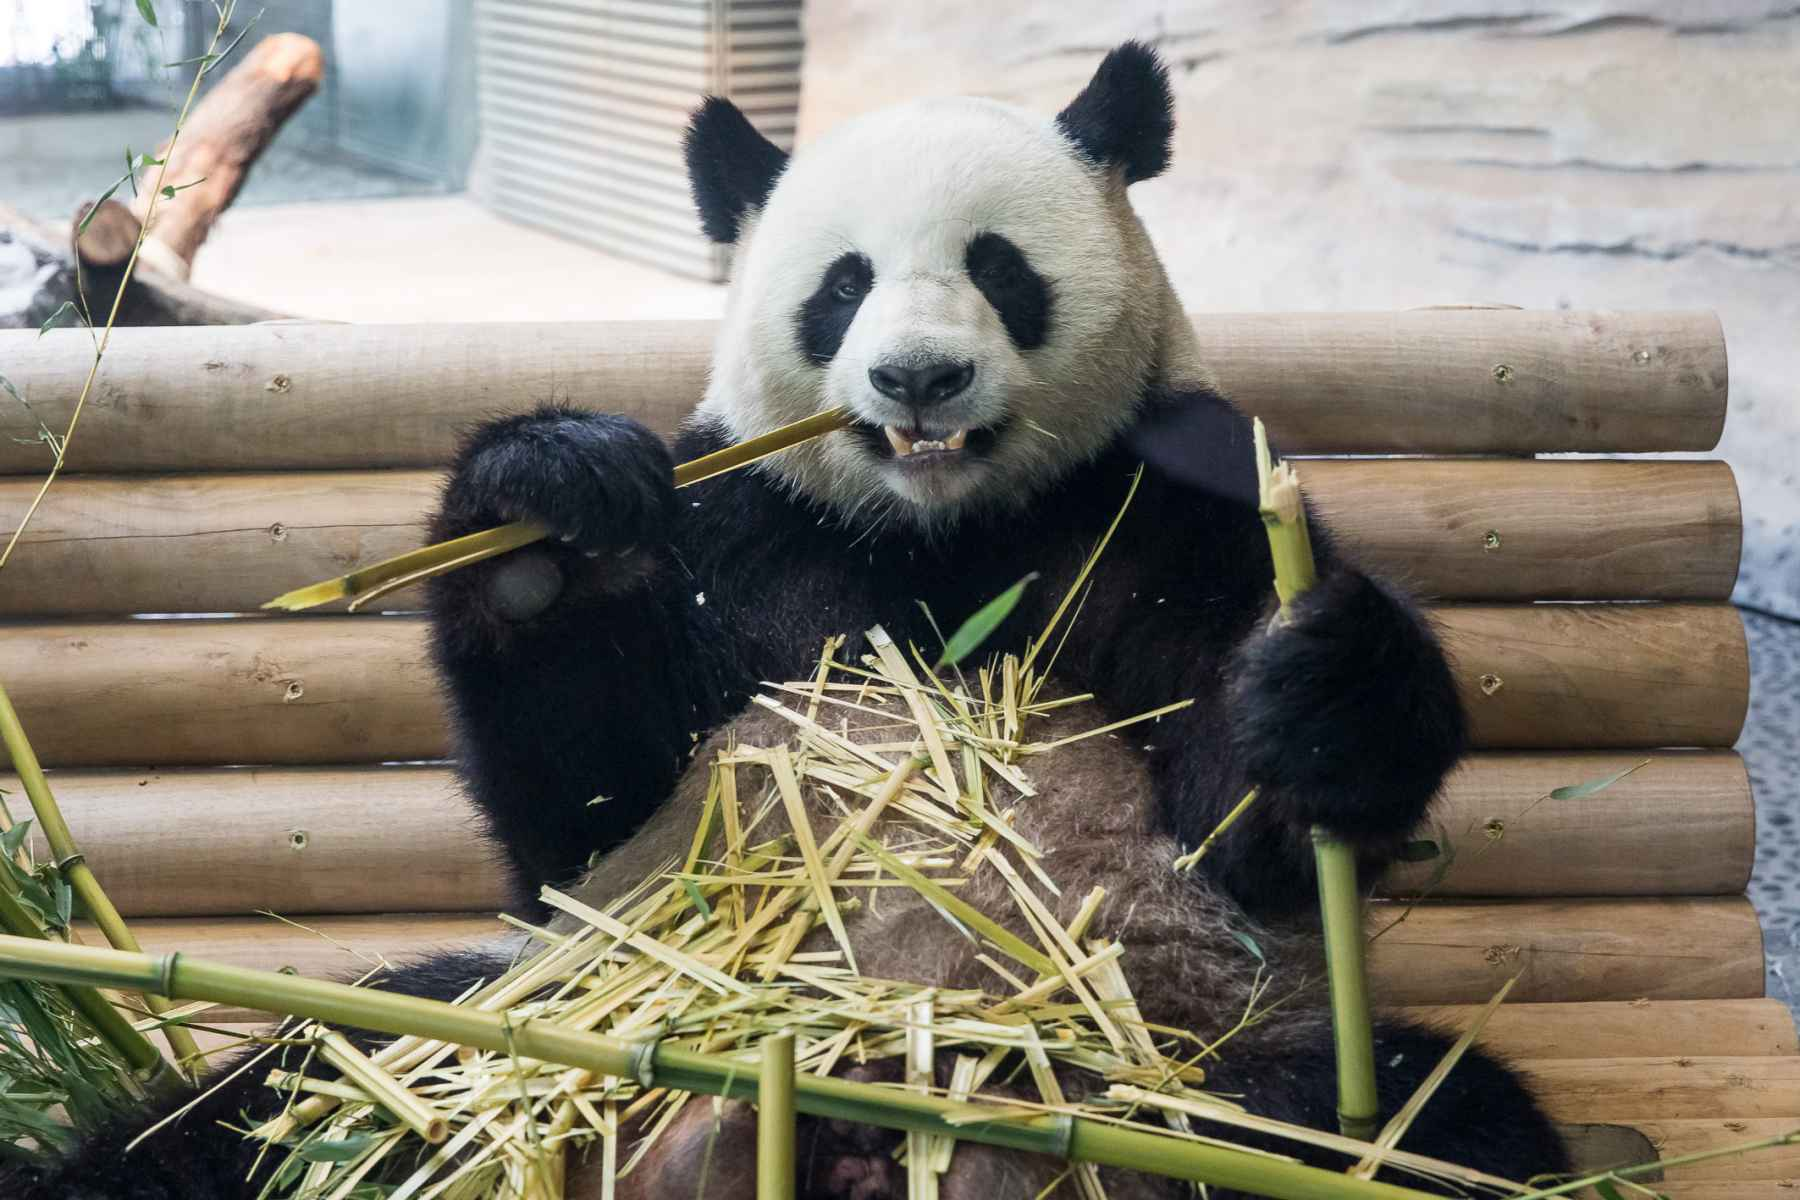 Furry happy: dan pearlman celebrates state opening of Berlin Zoo's new Panda Garden exhibit